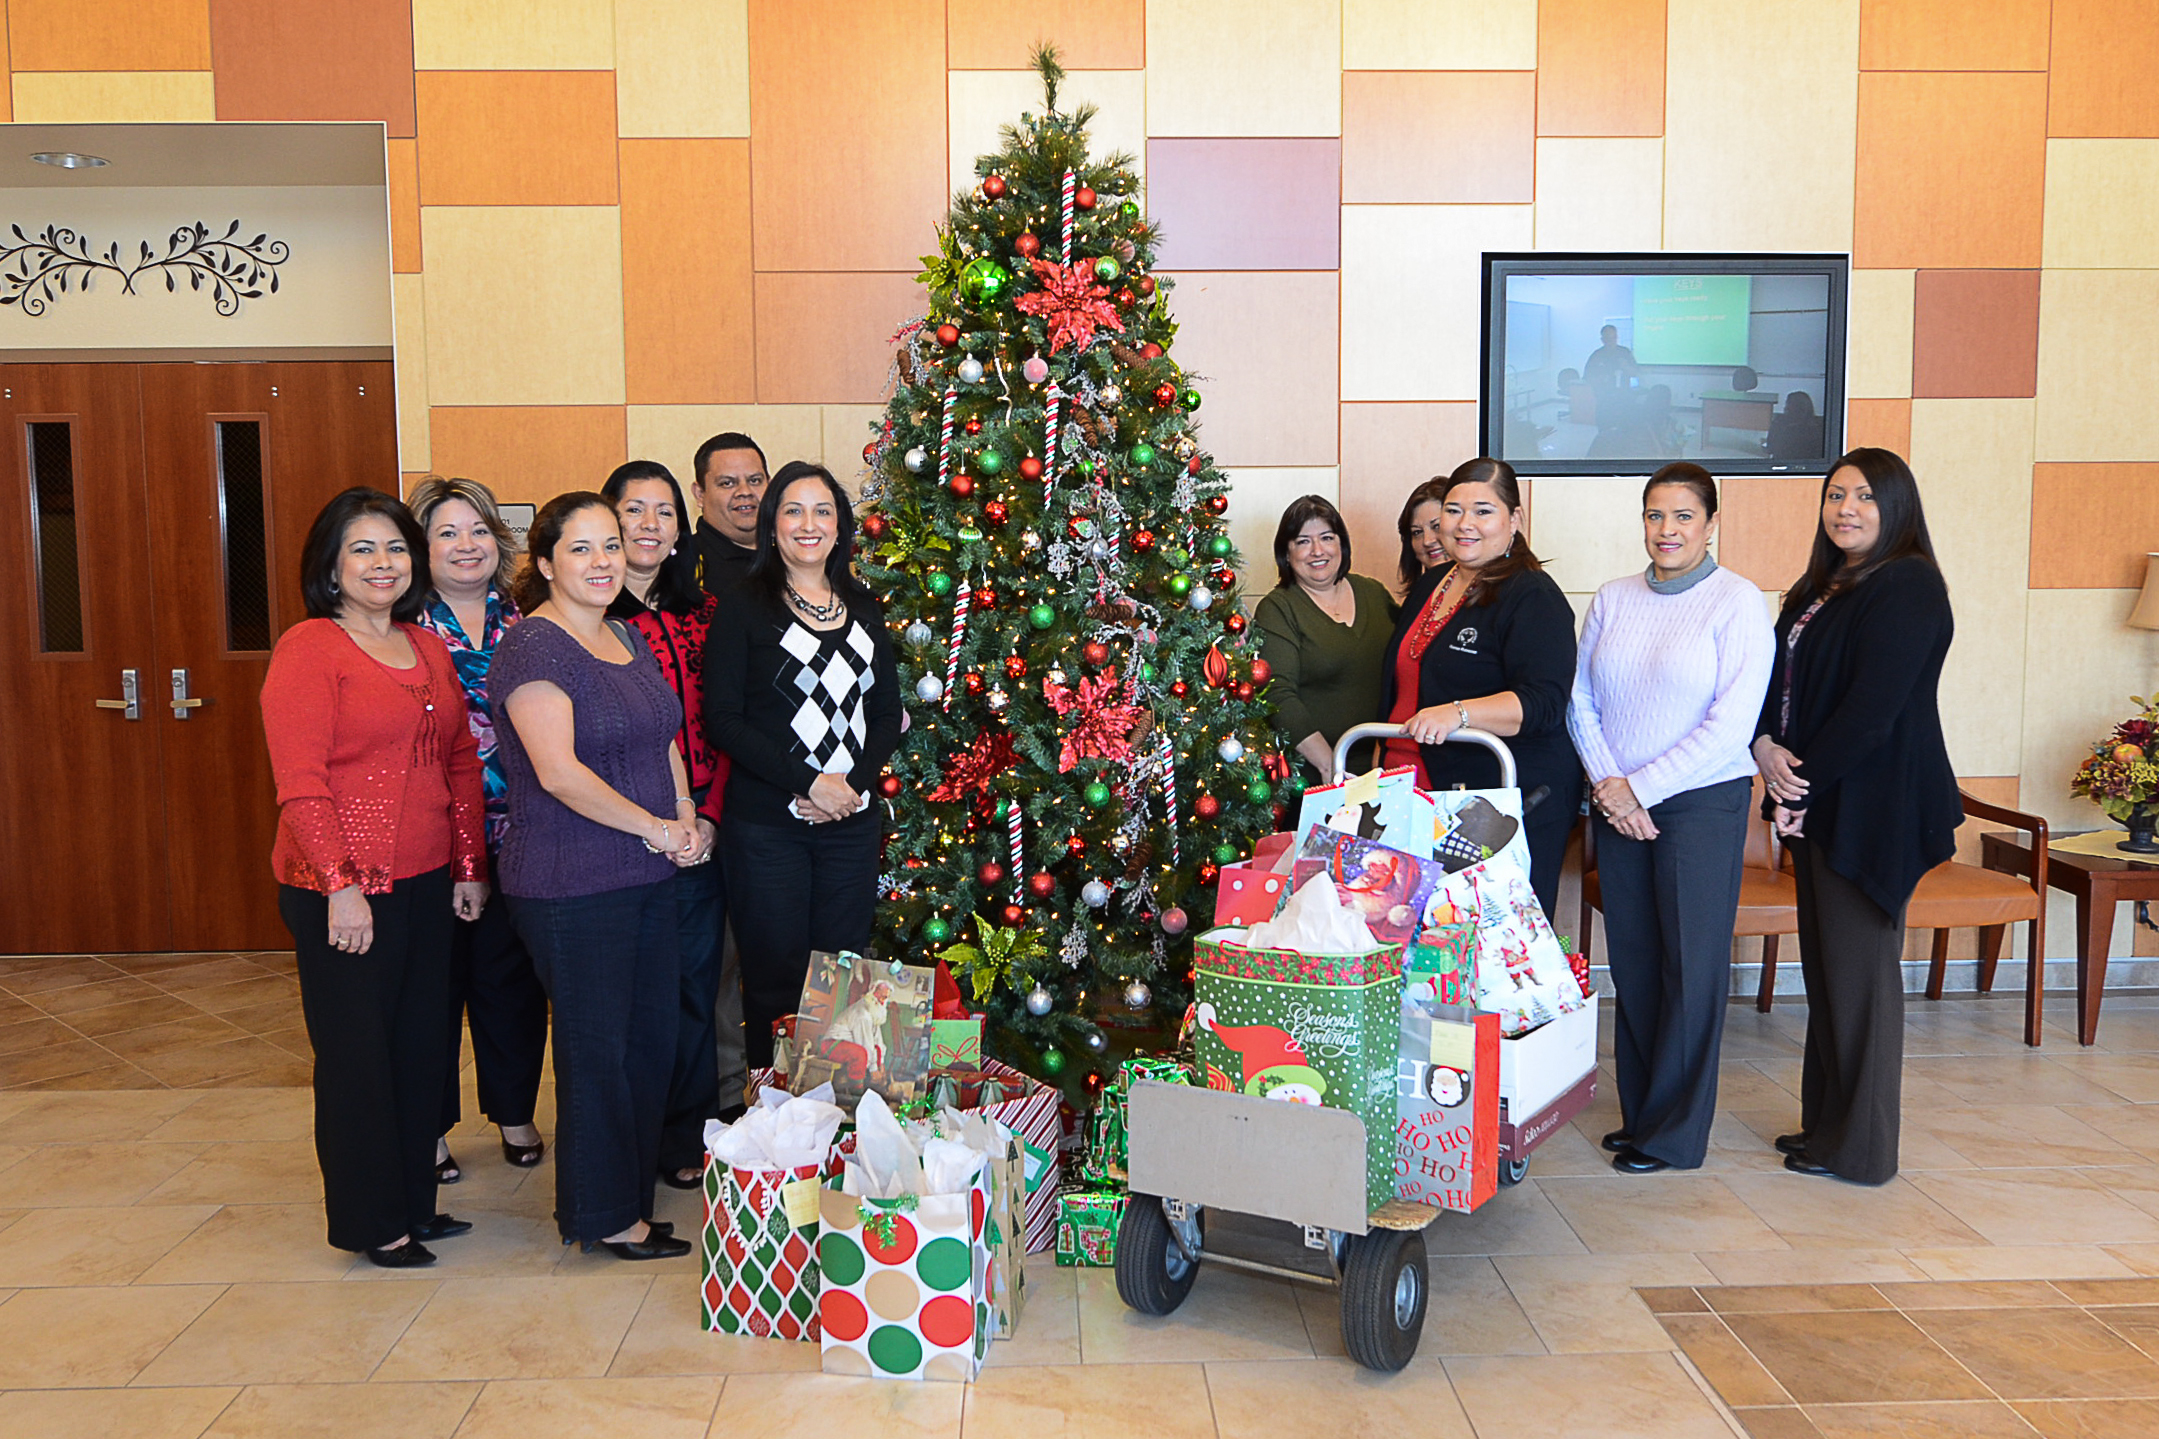 Human Resources and Technology give to families at HCISD